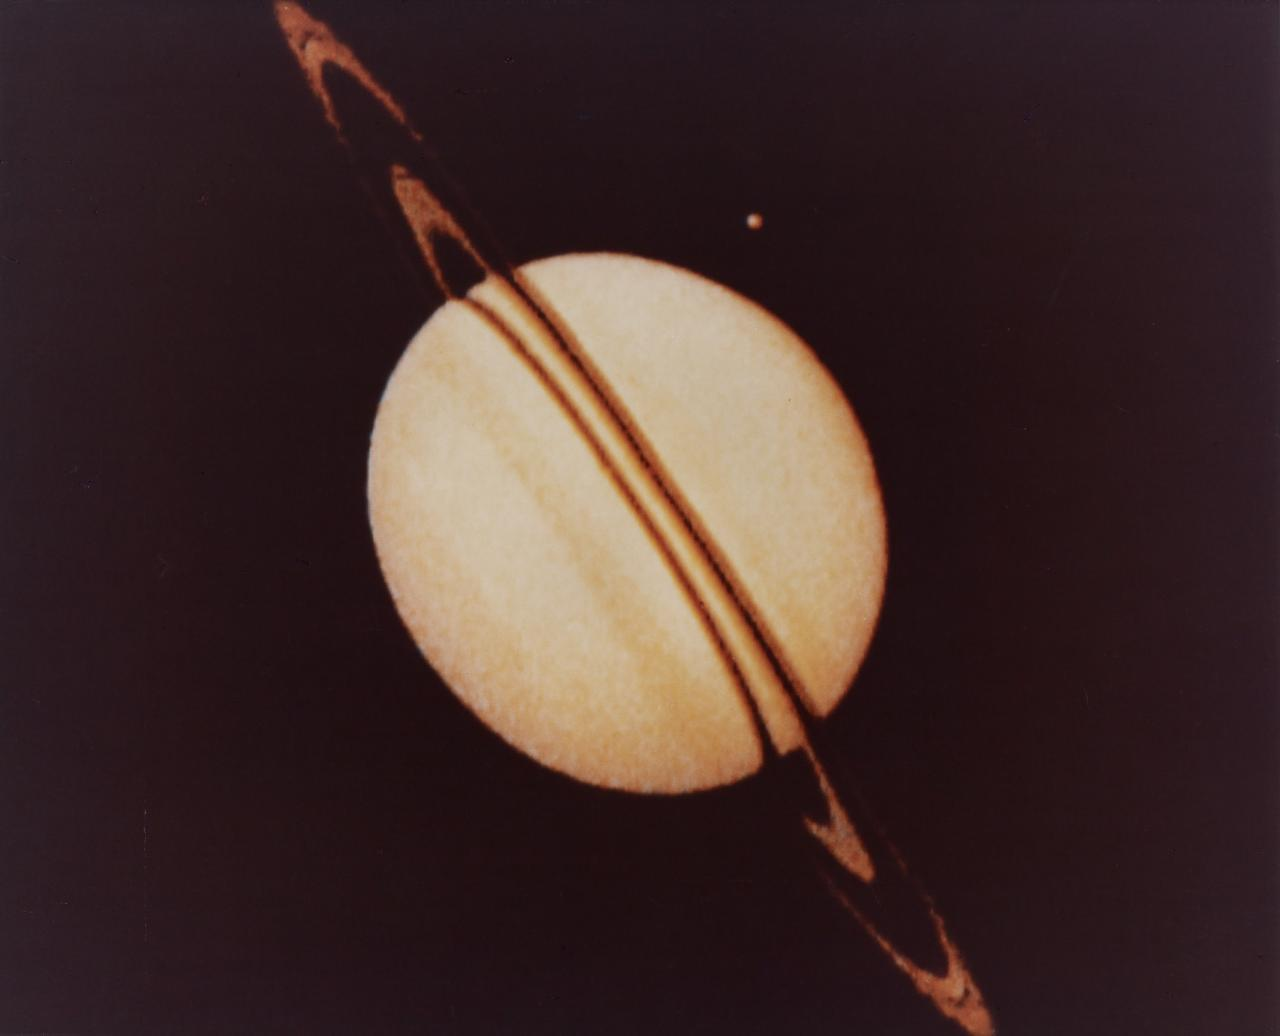 Best yet view of Saturn and its rings, returned by Pioneer II on 29 August 1979